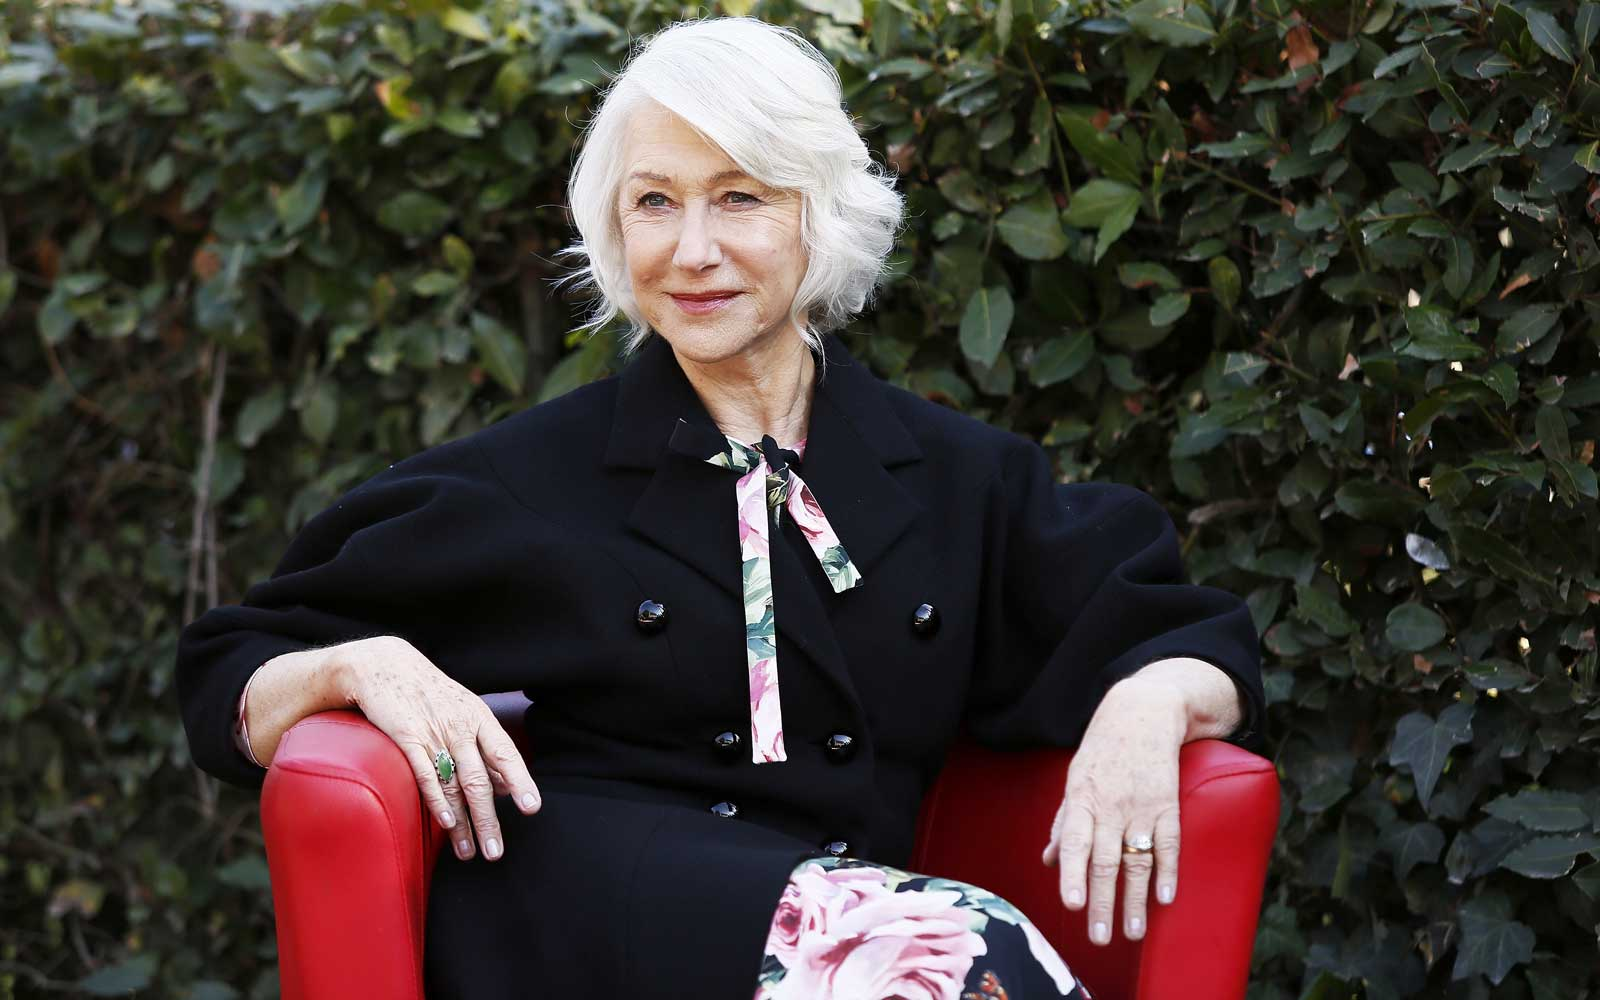 Why Helen Mirren Is the One Celebrity We'd Want to Take Along on a Road Trip